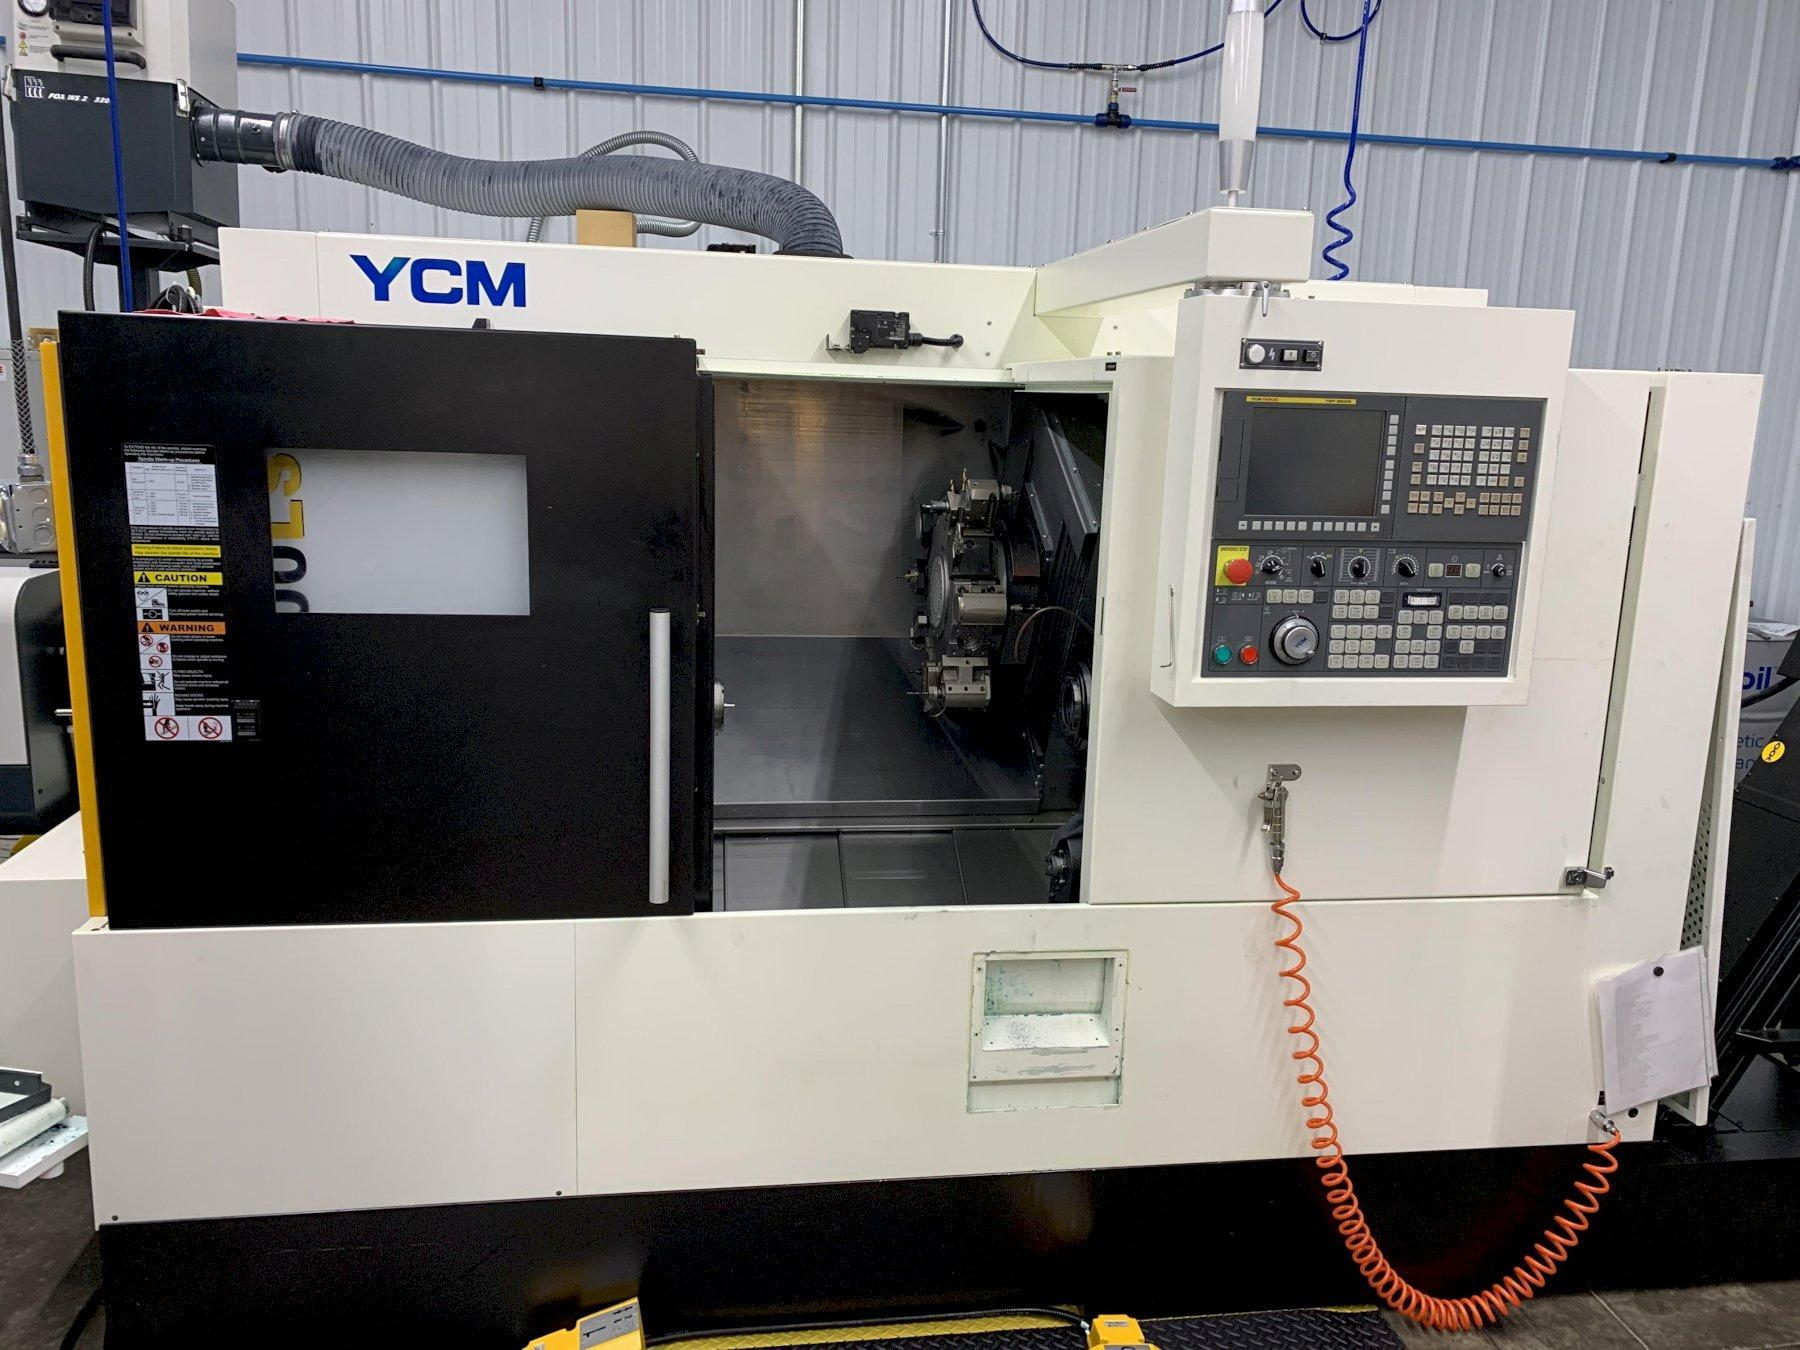 YCM NTC-1600LSY CNC Lathe 2017 with: Fanuc TXP-200FA CNC Control, Live Tooling, Sub-Spindle, Tool Setter, and Chip Conveyor.